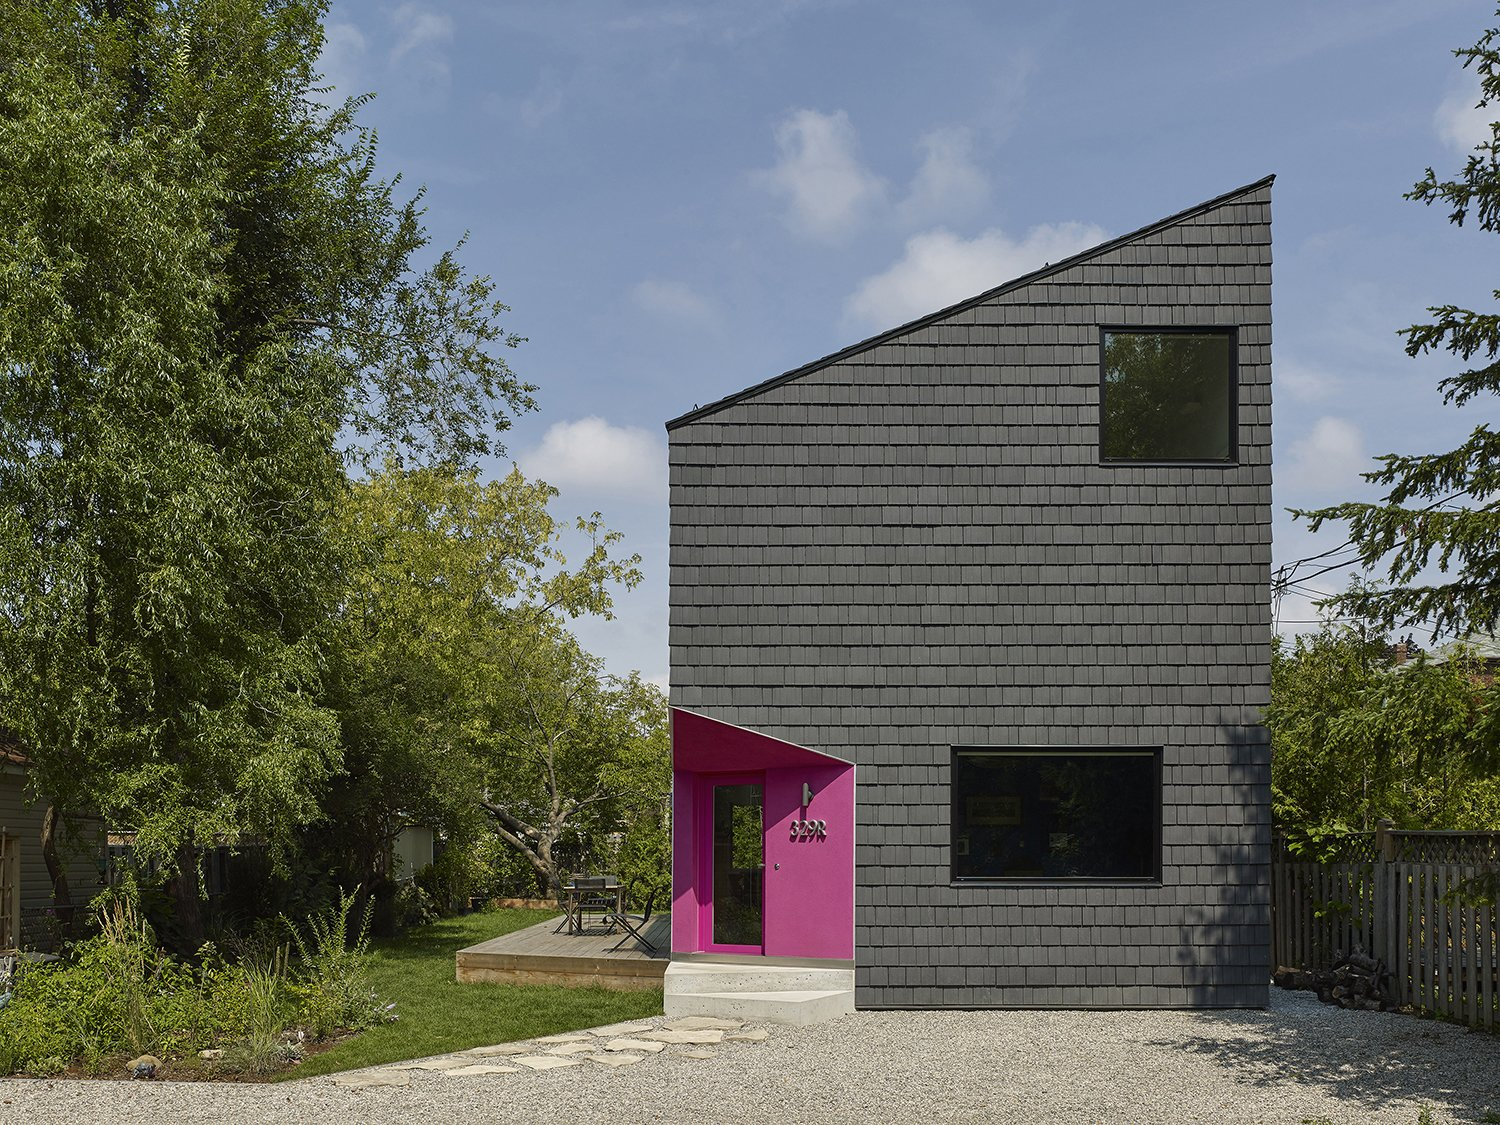 The house has a striking facade: The sharply angled roofline eschews conventional geometries. The structure is clad in a durable roof shake manufactured by Enviroshake that doesn't require any maintenance after installation.